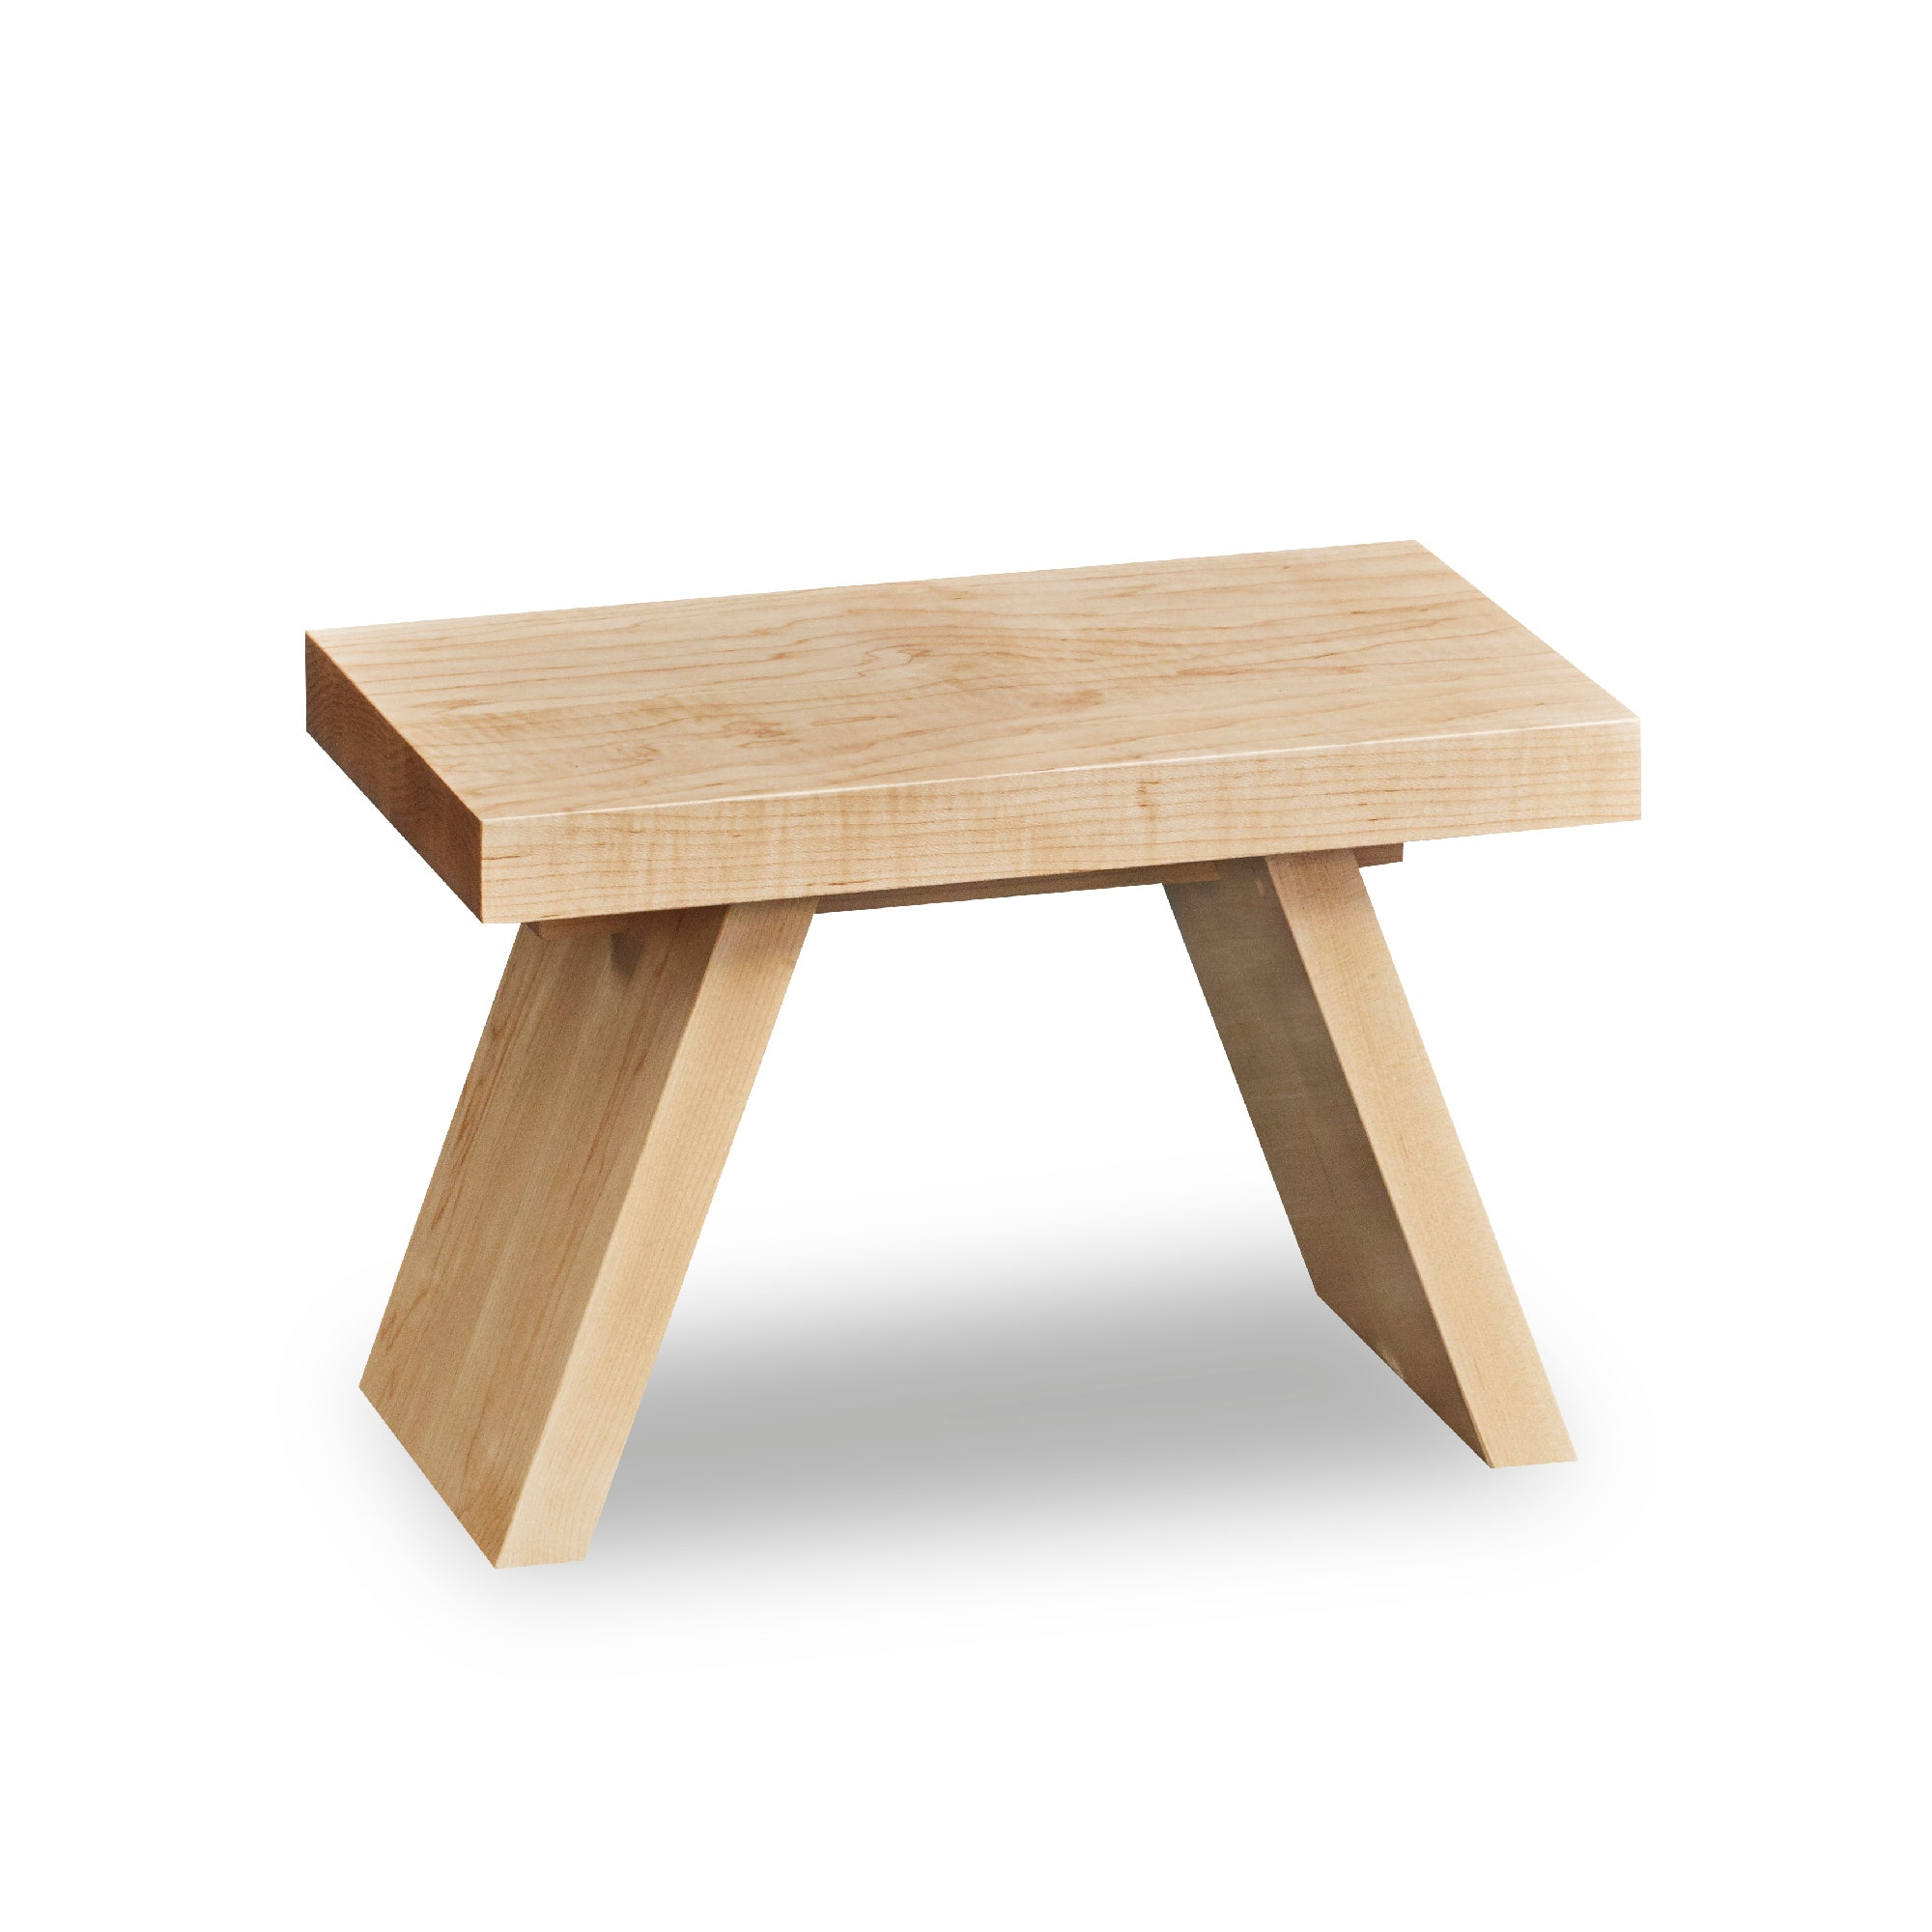 Solid maple wood step stool with angled legs.